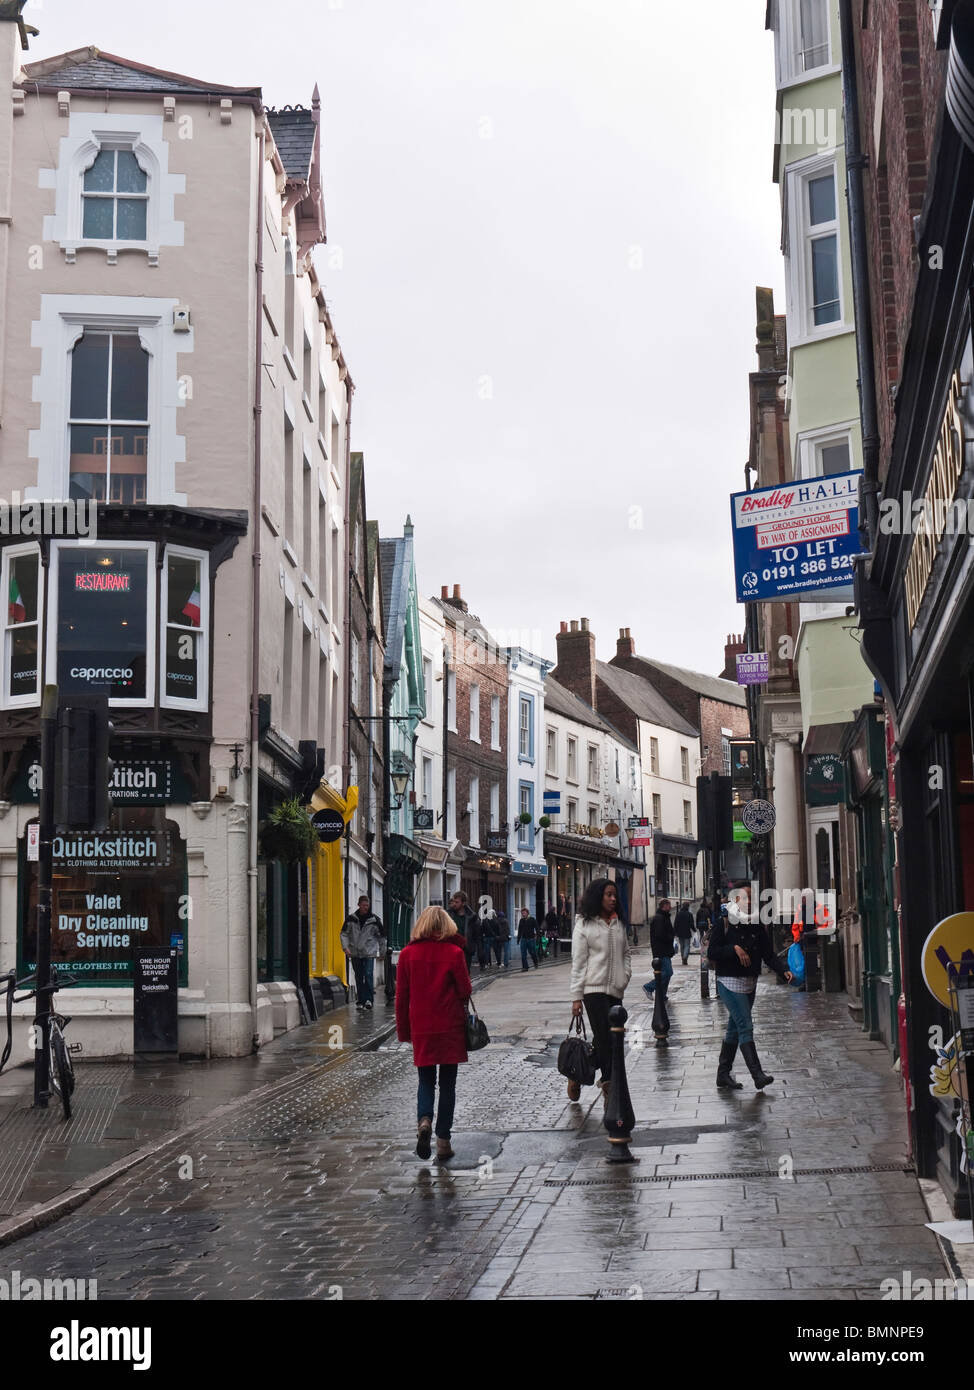 Saddler Street Durham City Uk Stock Photo 29982129 Alamy